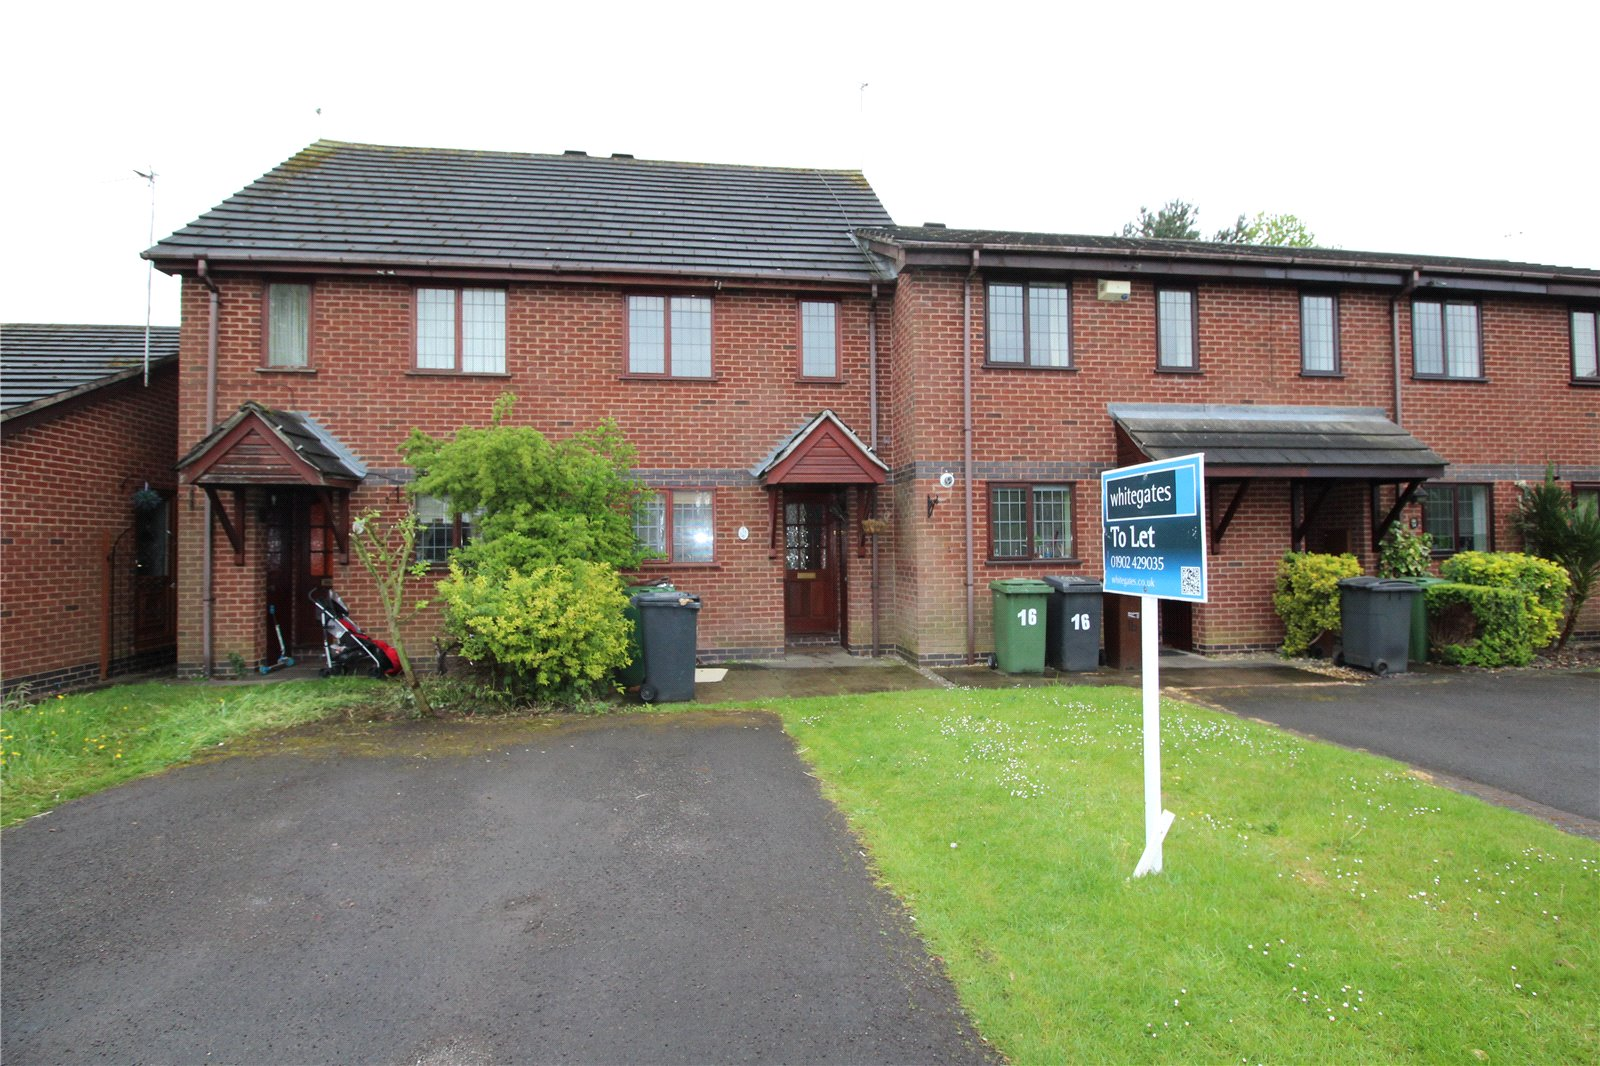 Whitegates Wolverhampton 2 Bedroom House To Rent In Tanfield Close Tettenhall Wood Wolverhampton Wv6 Whitegates